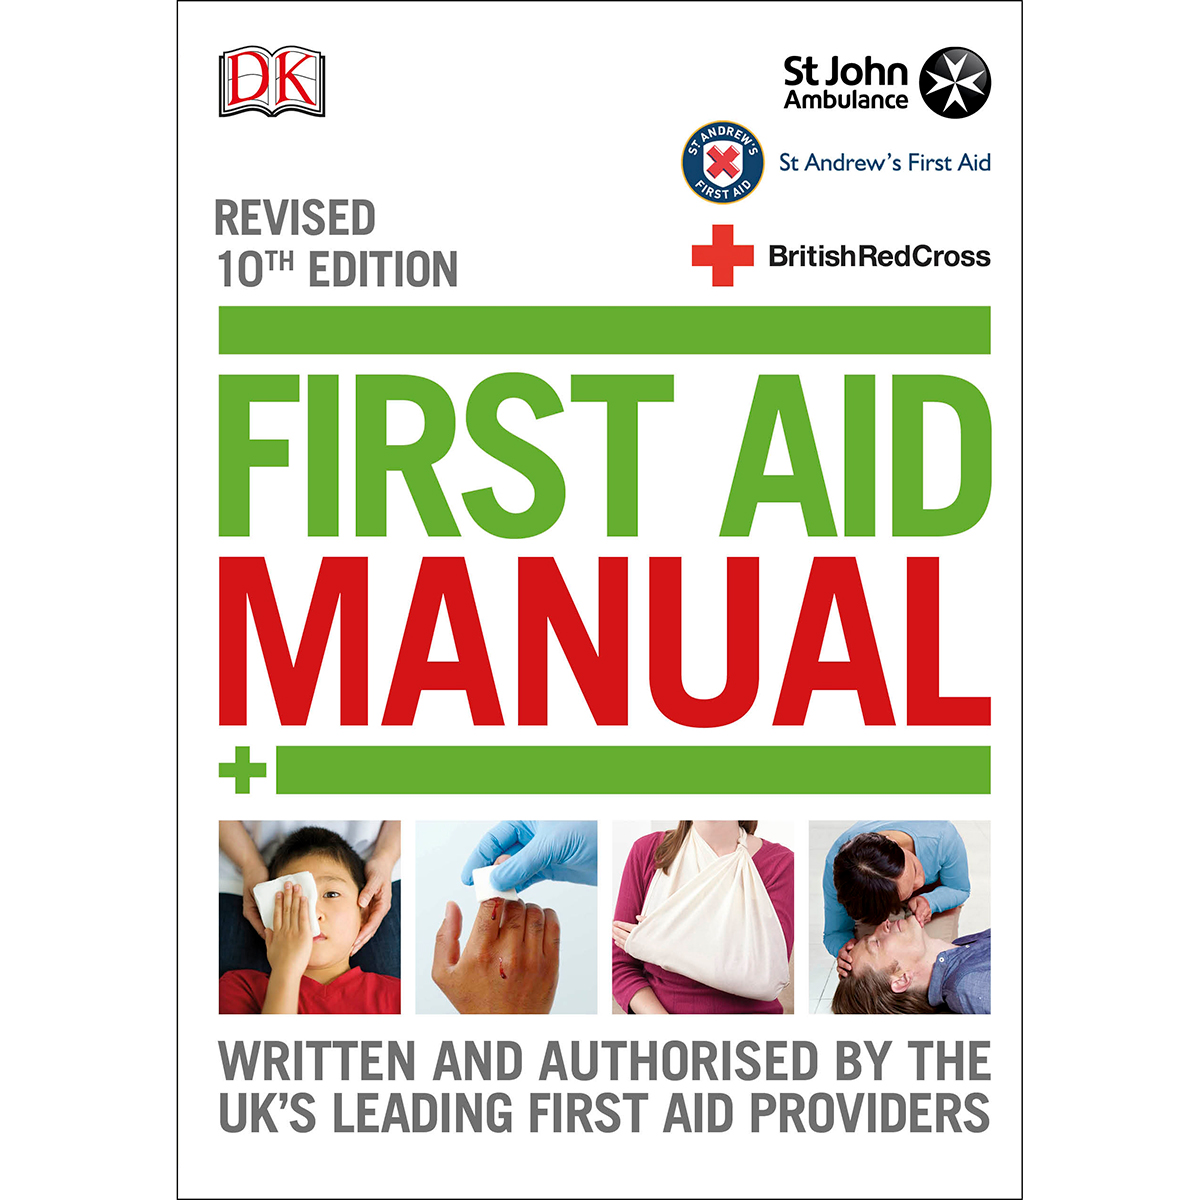 First Aid Manual, Revised 10th Edition 2016